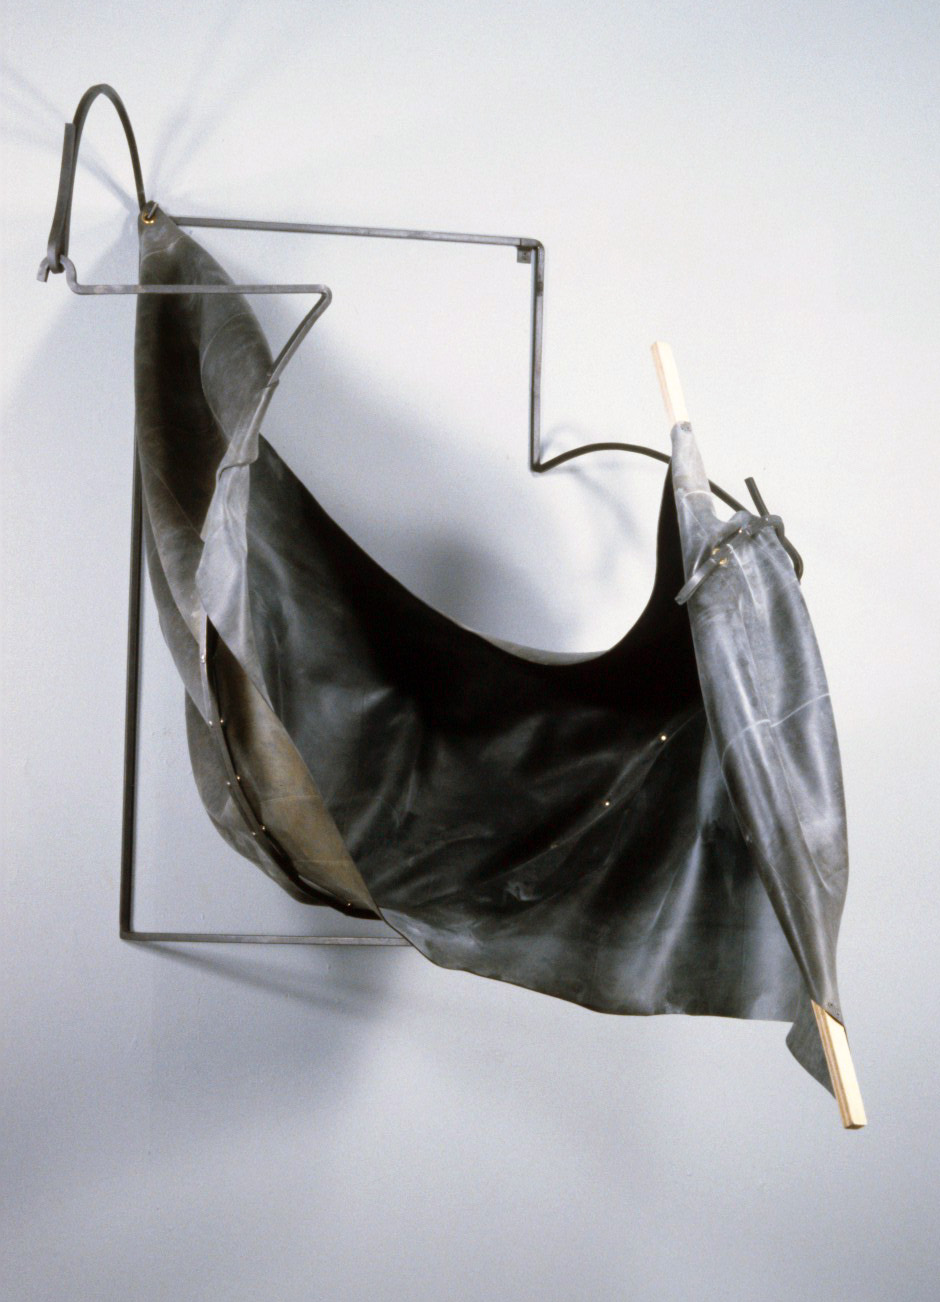 Untitled 90.4   1990  rubber and steel  62 X 49 X 53""